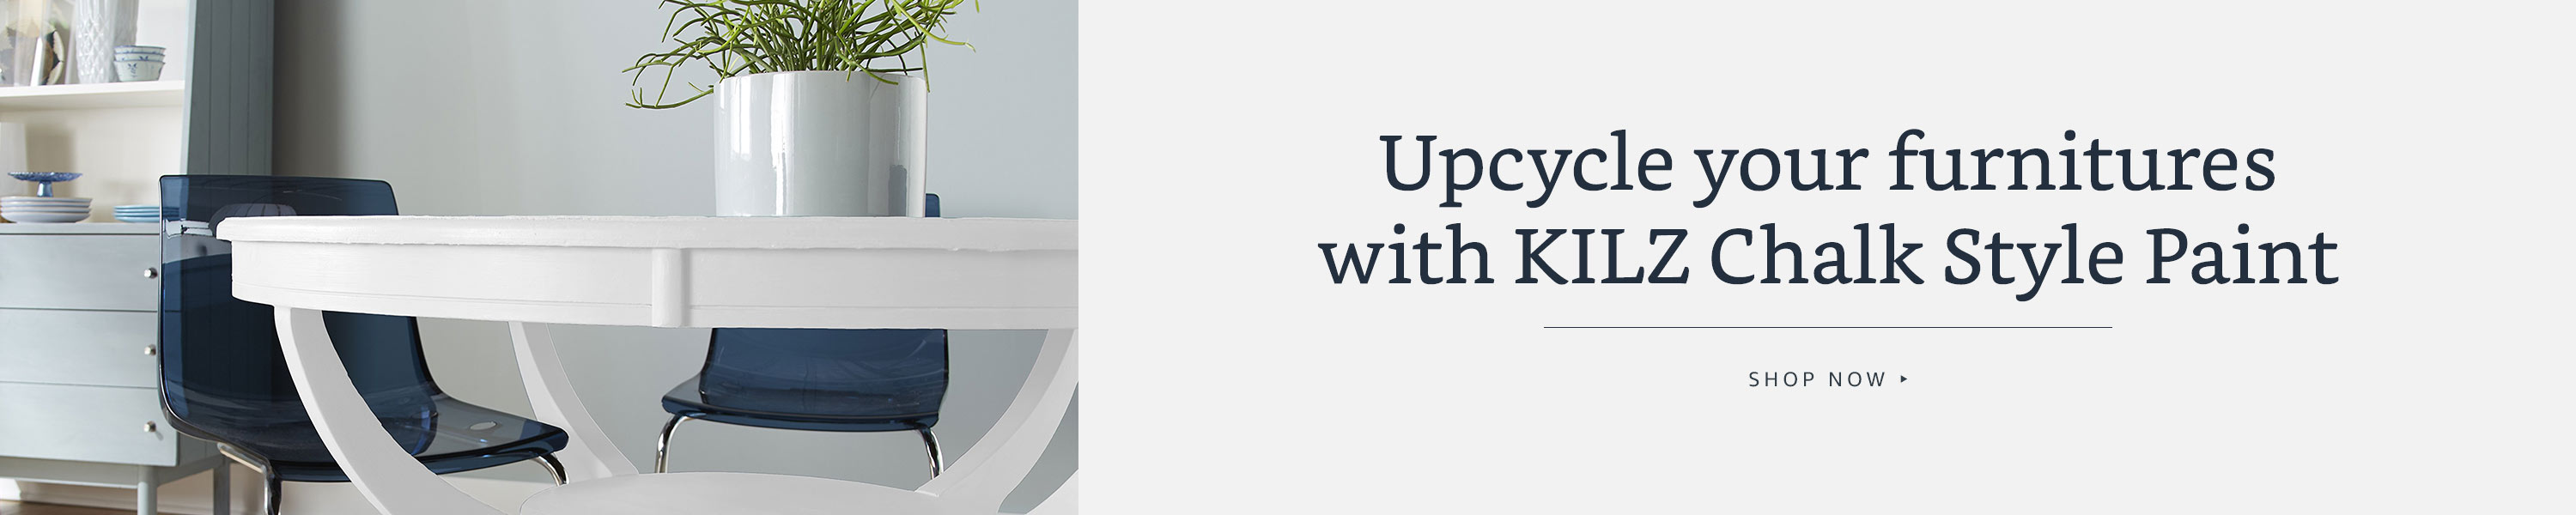 Upcycle your furniture with KILZ